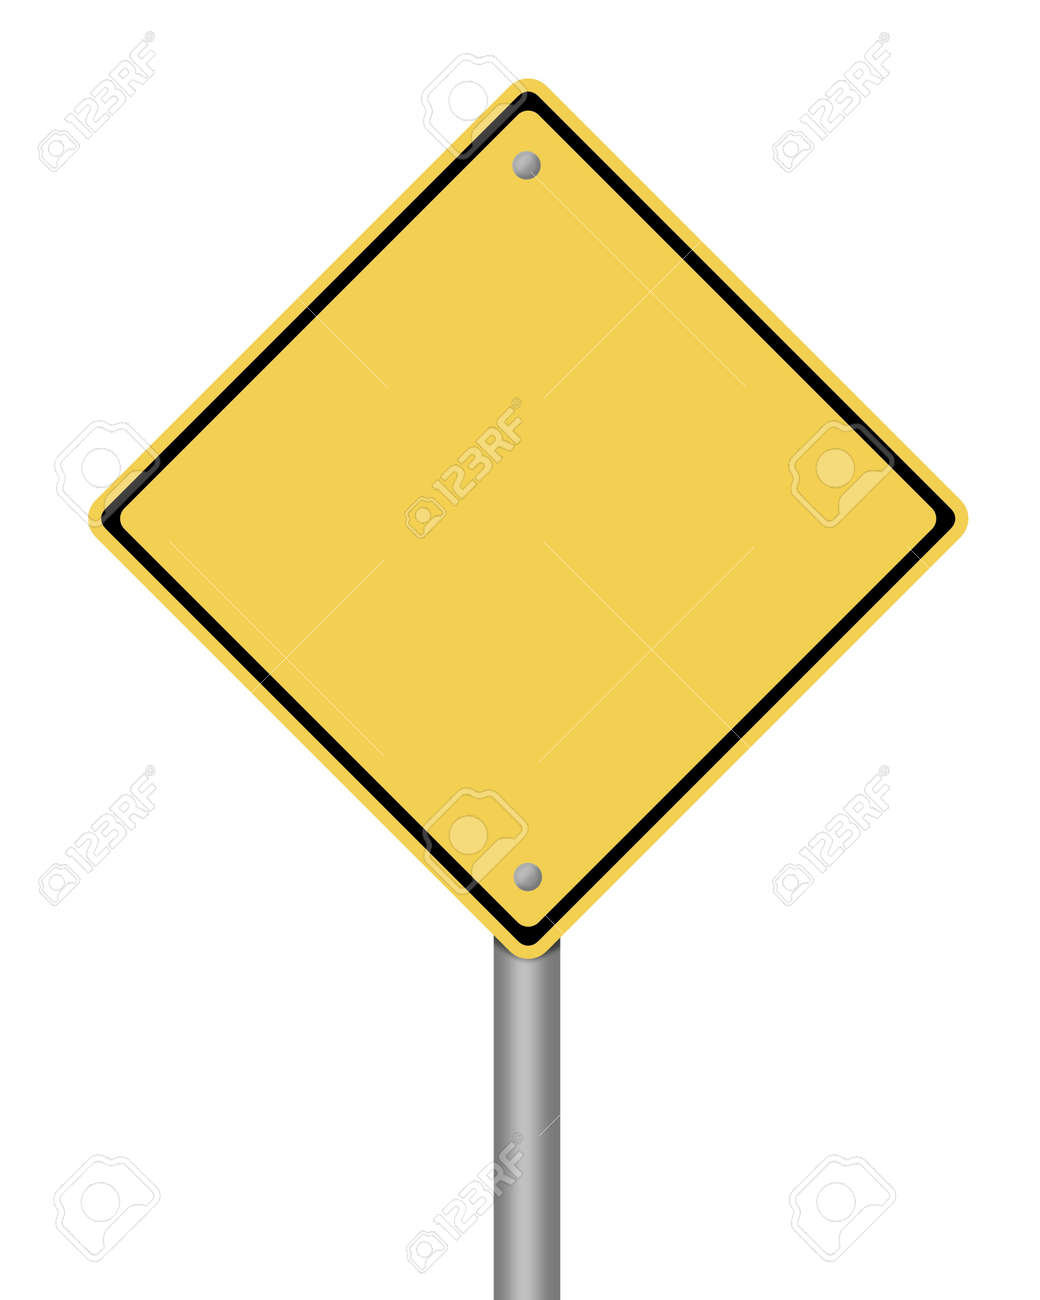 blank yellow warning sign on white background Stock Photo - 5684508